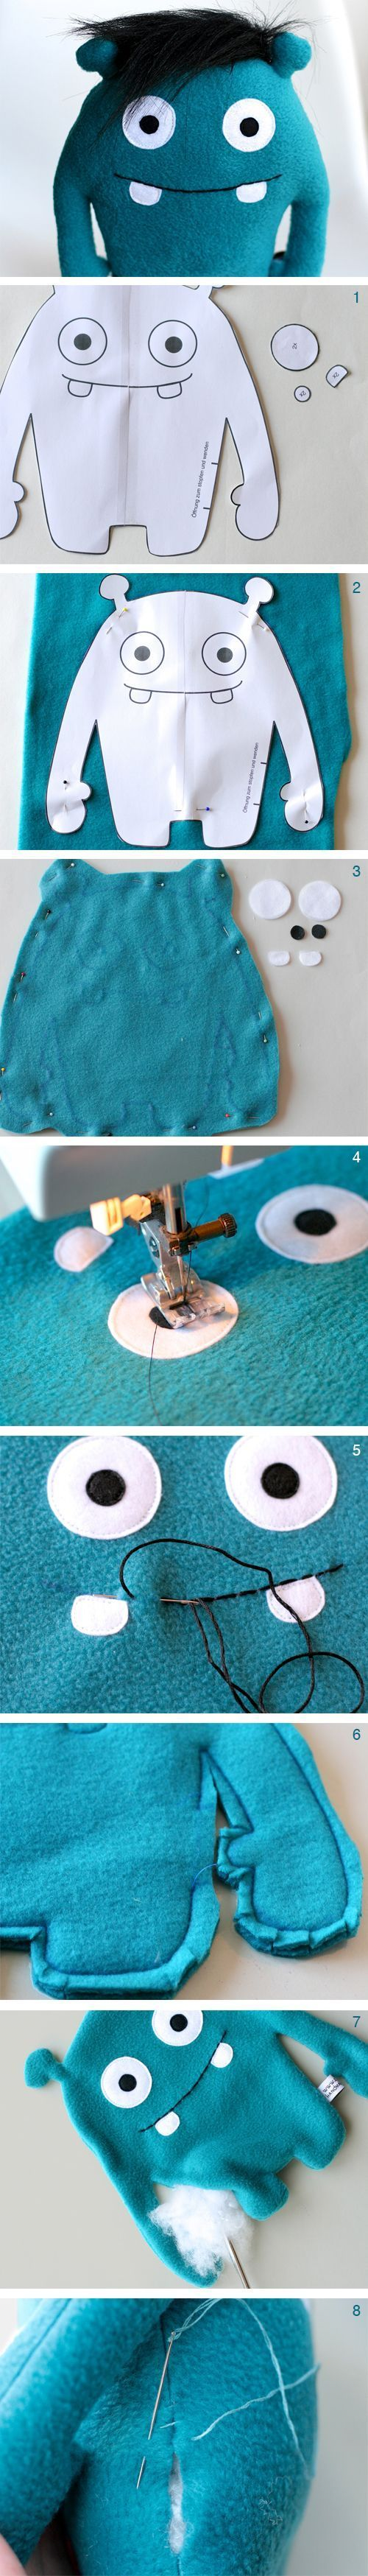 DIY-Nähanleitung für ein niedliches Monster aus Plüsch, Spielzeug selbermachen / diy sewing tutorial for a cuddly monster, gift idea via http://DaWanda.com